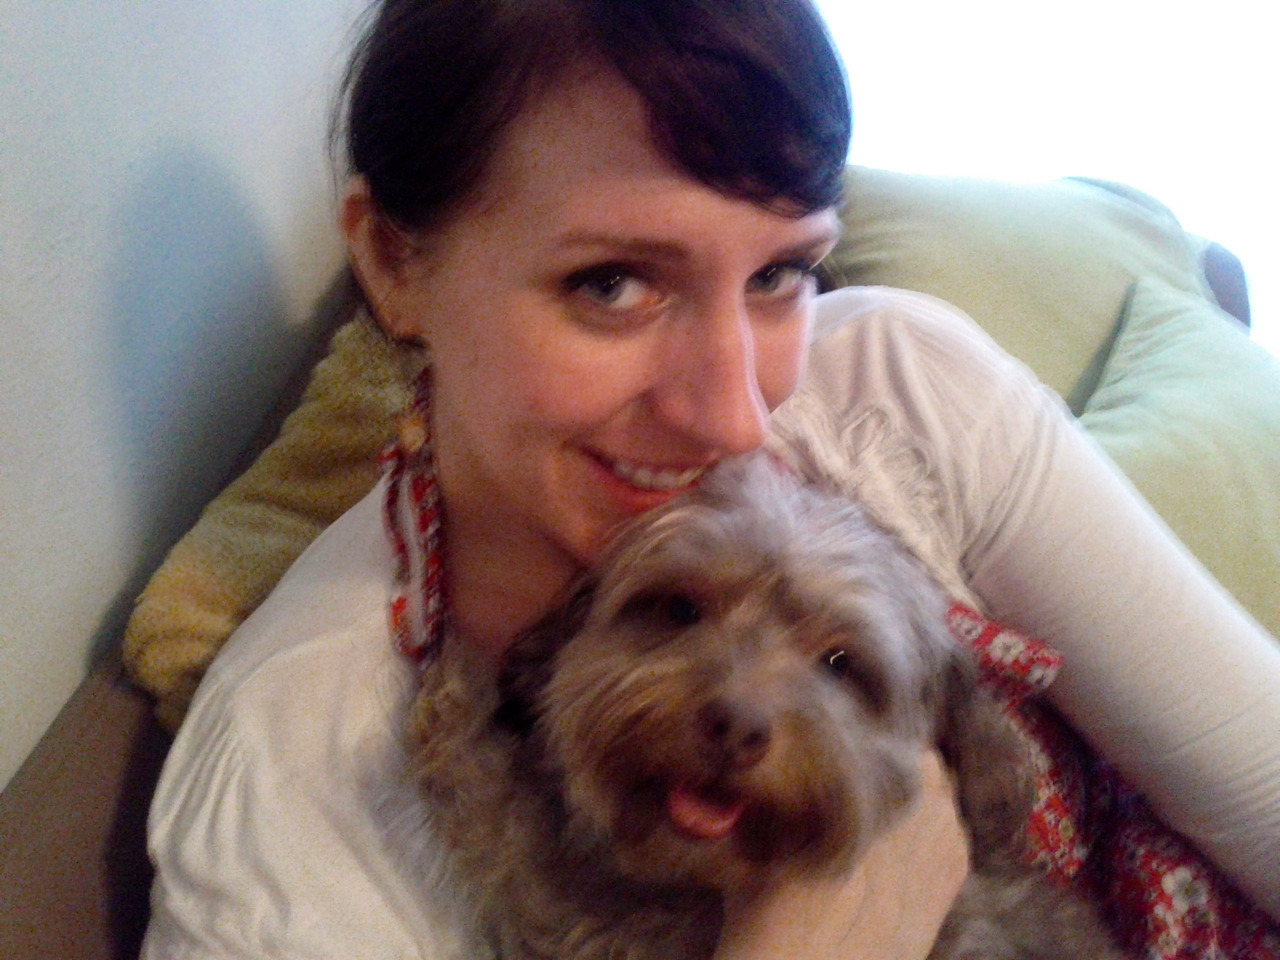 Fuzzy Animal Friday! Annie and me on St. Paddy's Day. The photos aren't that great but I love how our expressions match, her little paw wrapped around my neck, and THAT FACE.  Precious.